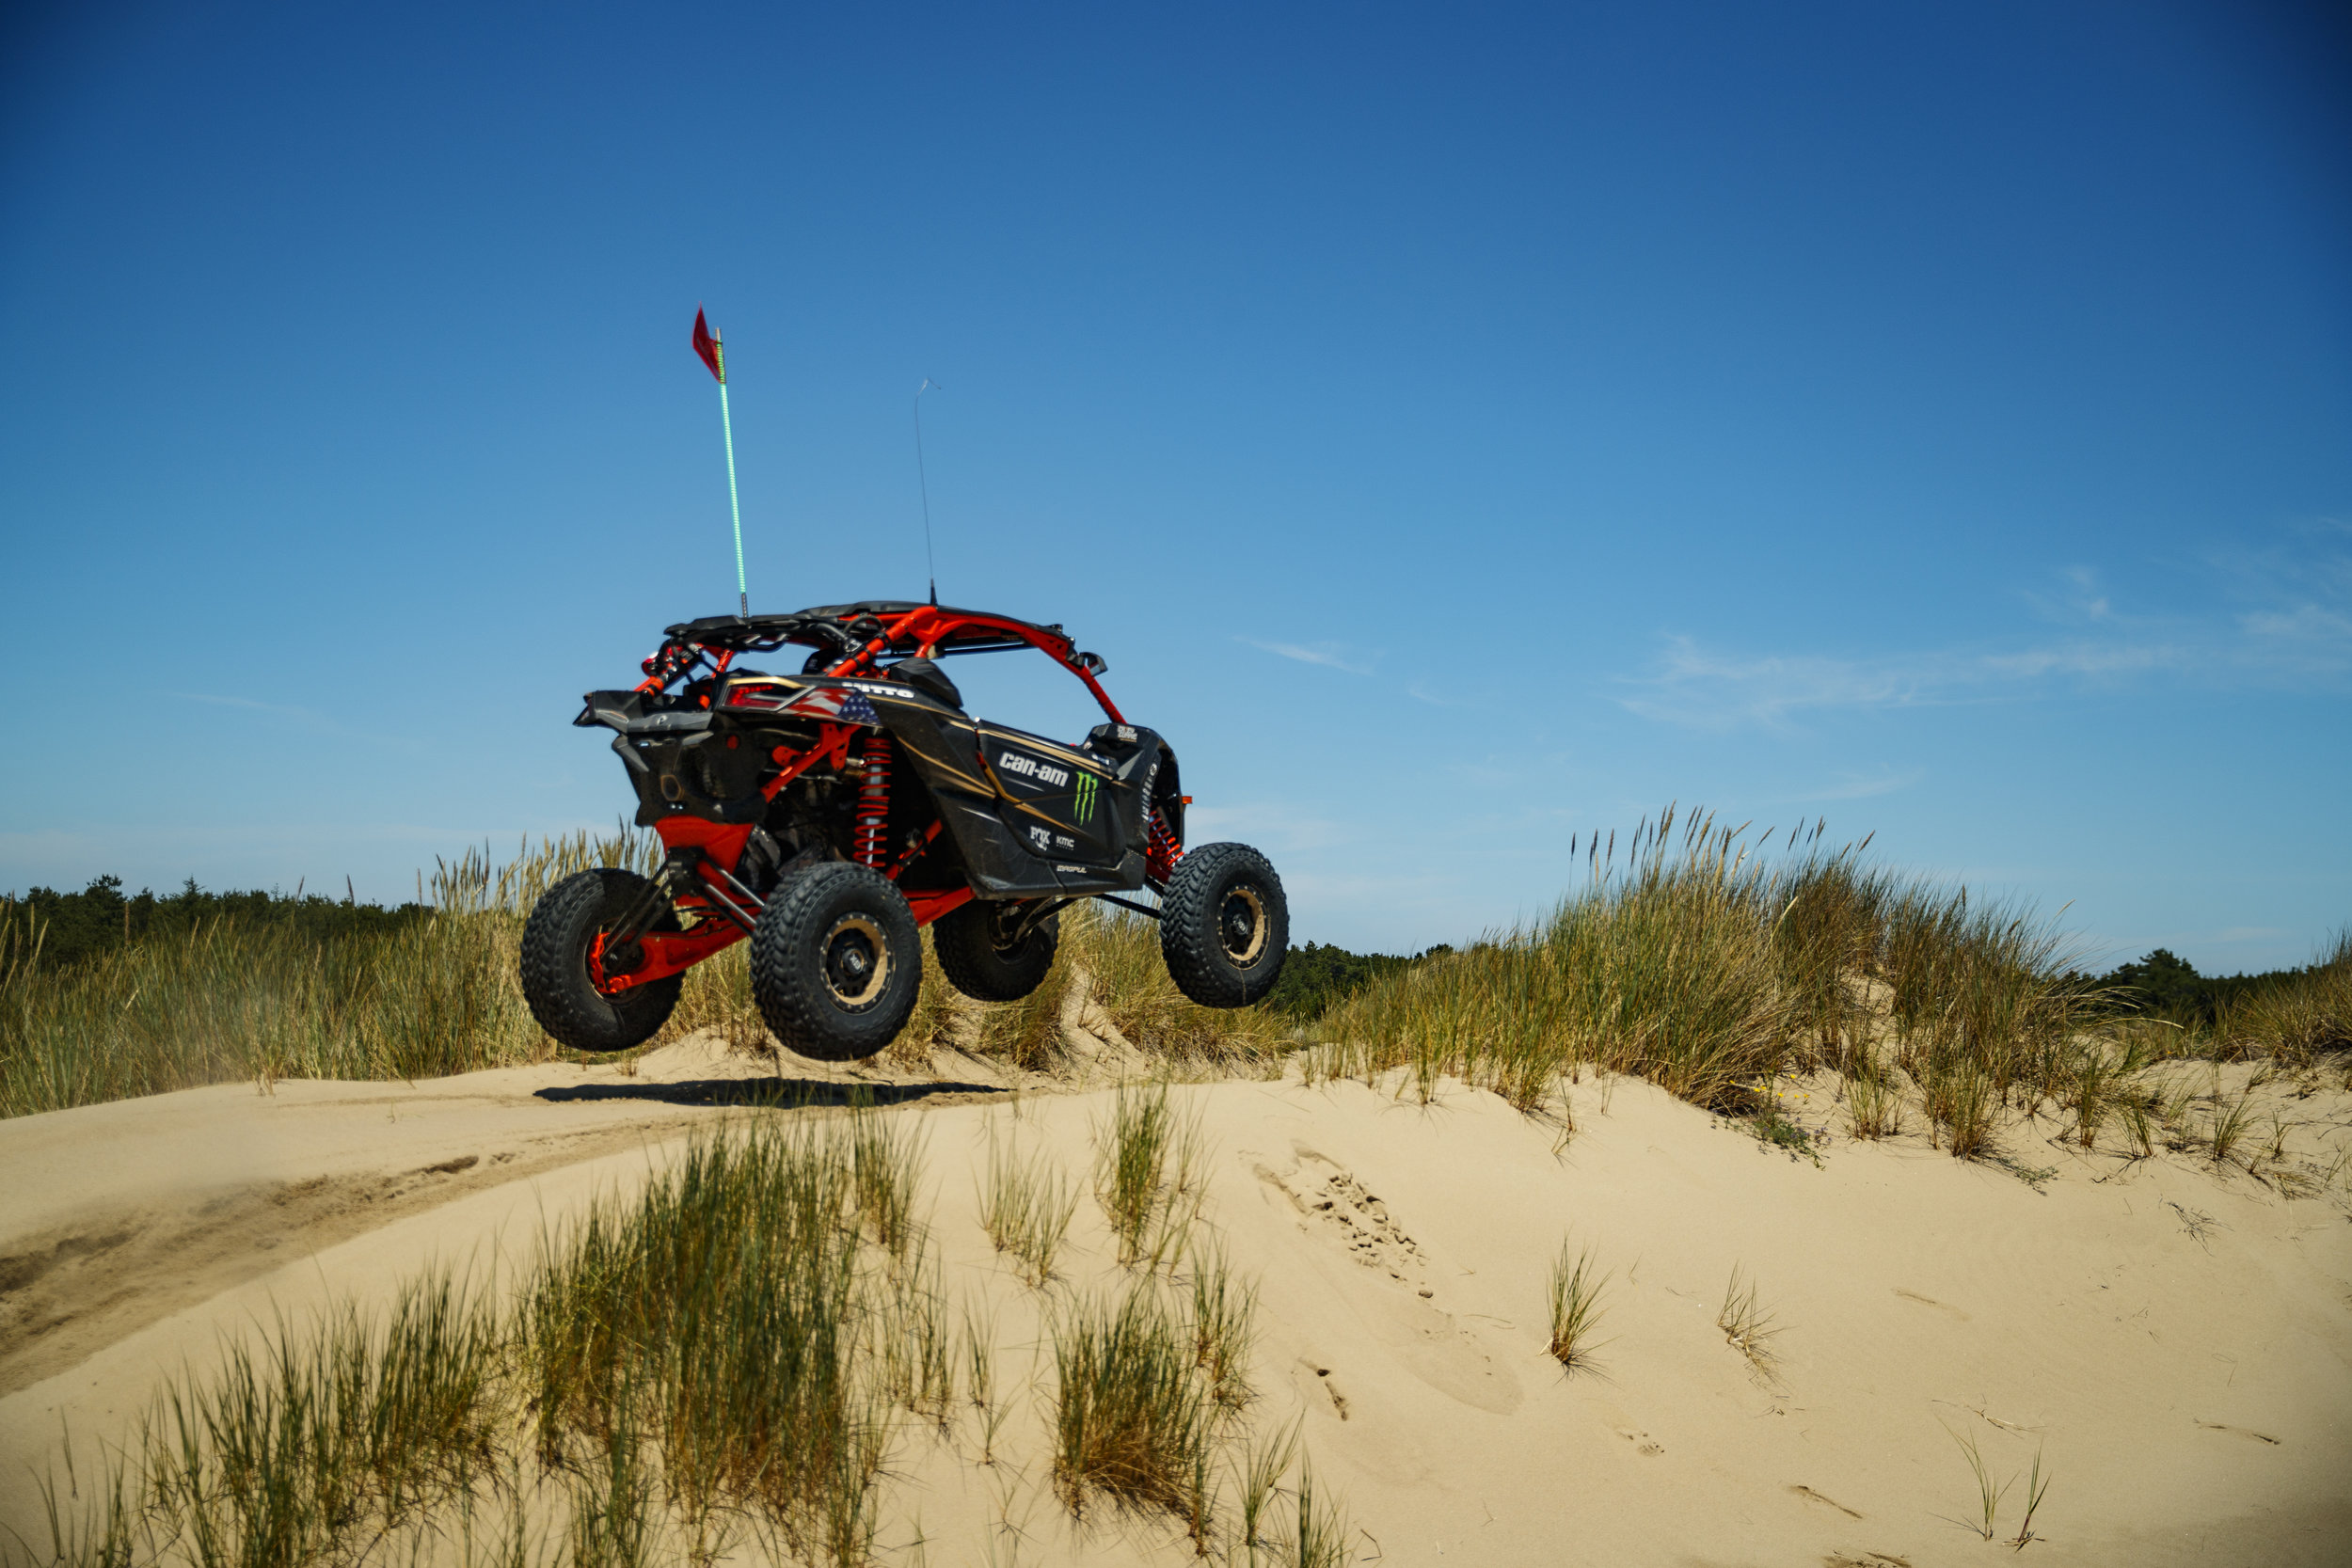 6_29_CaseyCurrie_UTVTakeover_CoosBay_Oregon_Can-Am_004.jpg